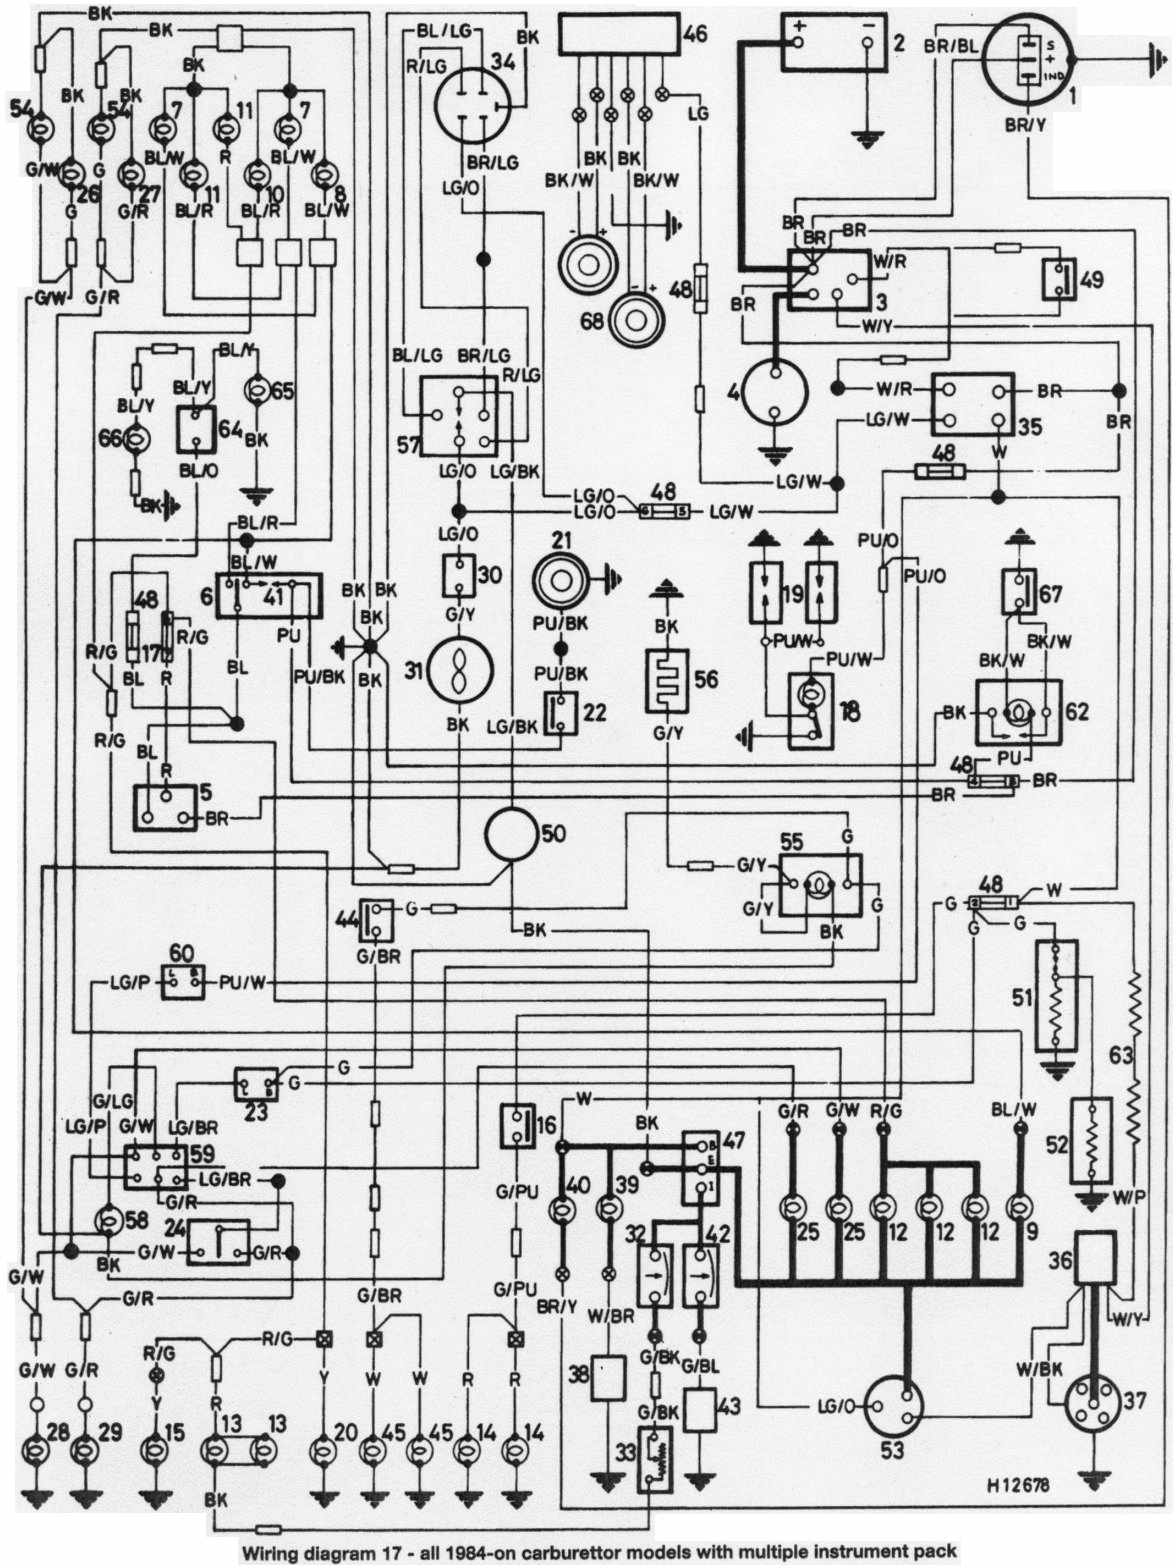 wiring diagram of 1984 onwards all mini series with multiple instrument pack?t\=1508499130 bmw mini wiring diagram gem e2 wiring diagrams \u2022 wiring diagrams 2004 mini cooper wiring diagram at readyjetset.co